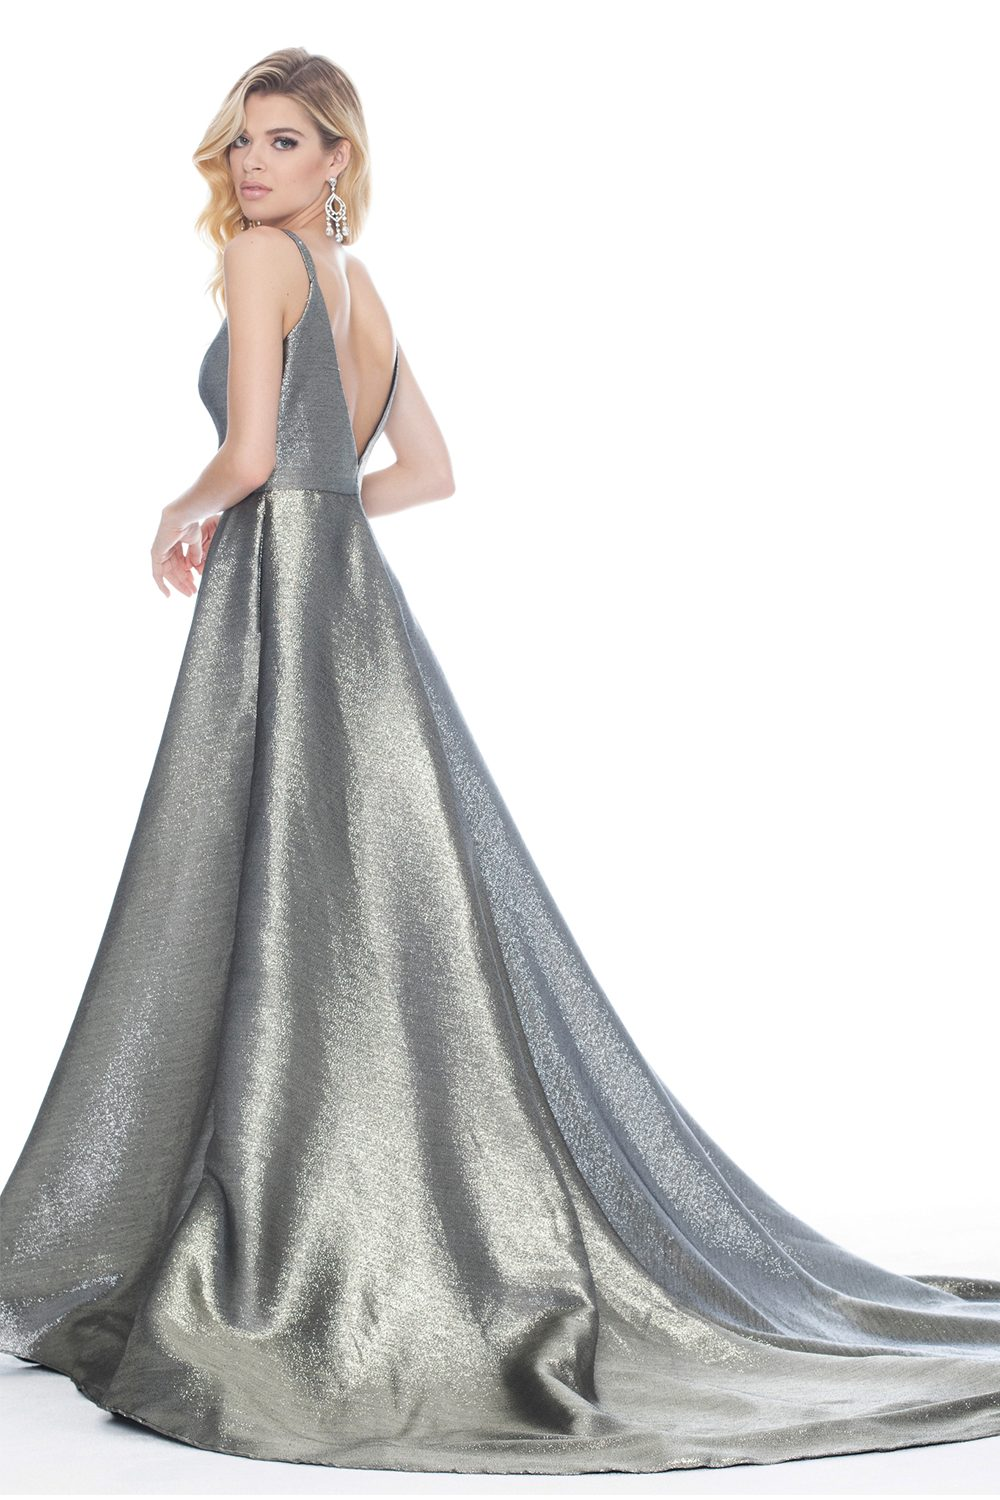 Ashley Lauren 1514 Metallic Evening Dress back